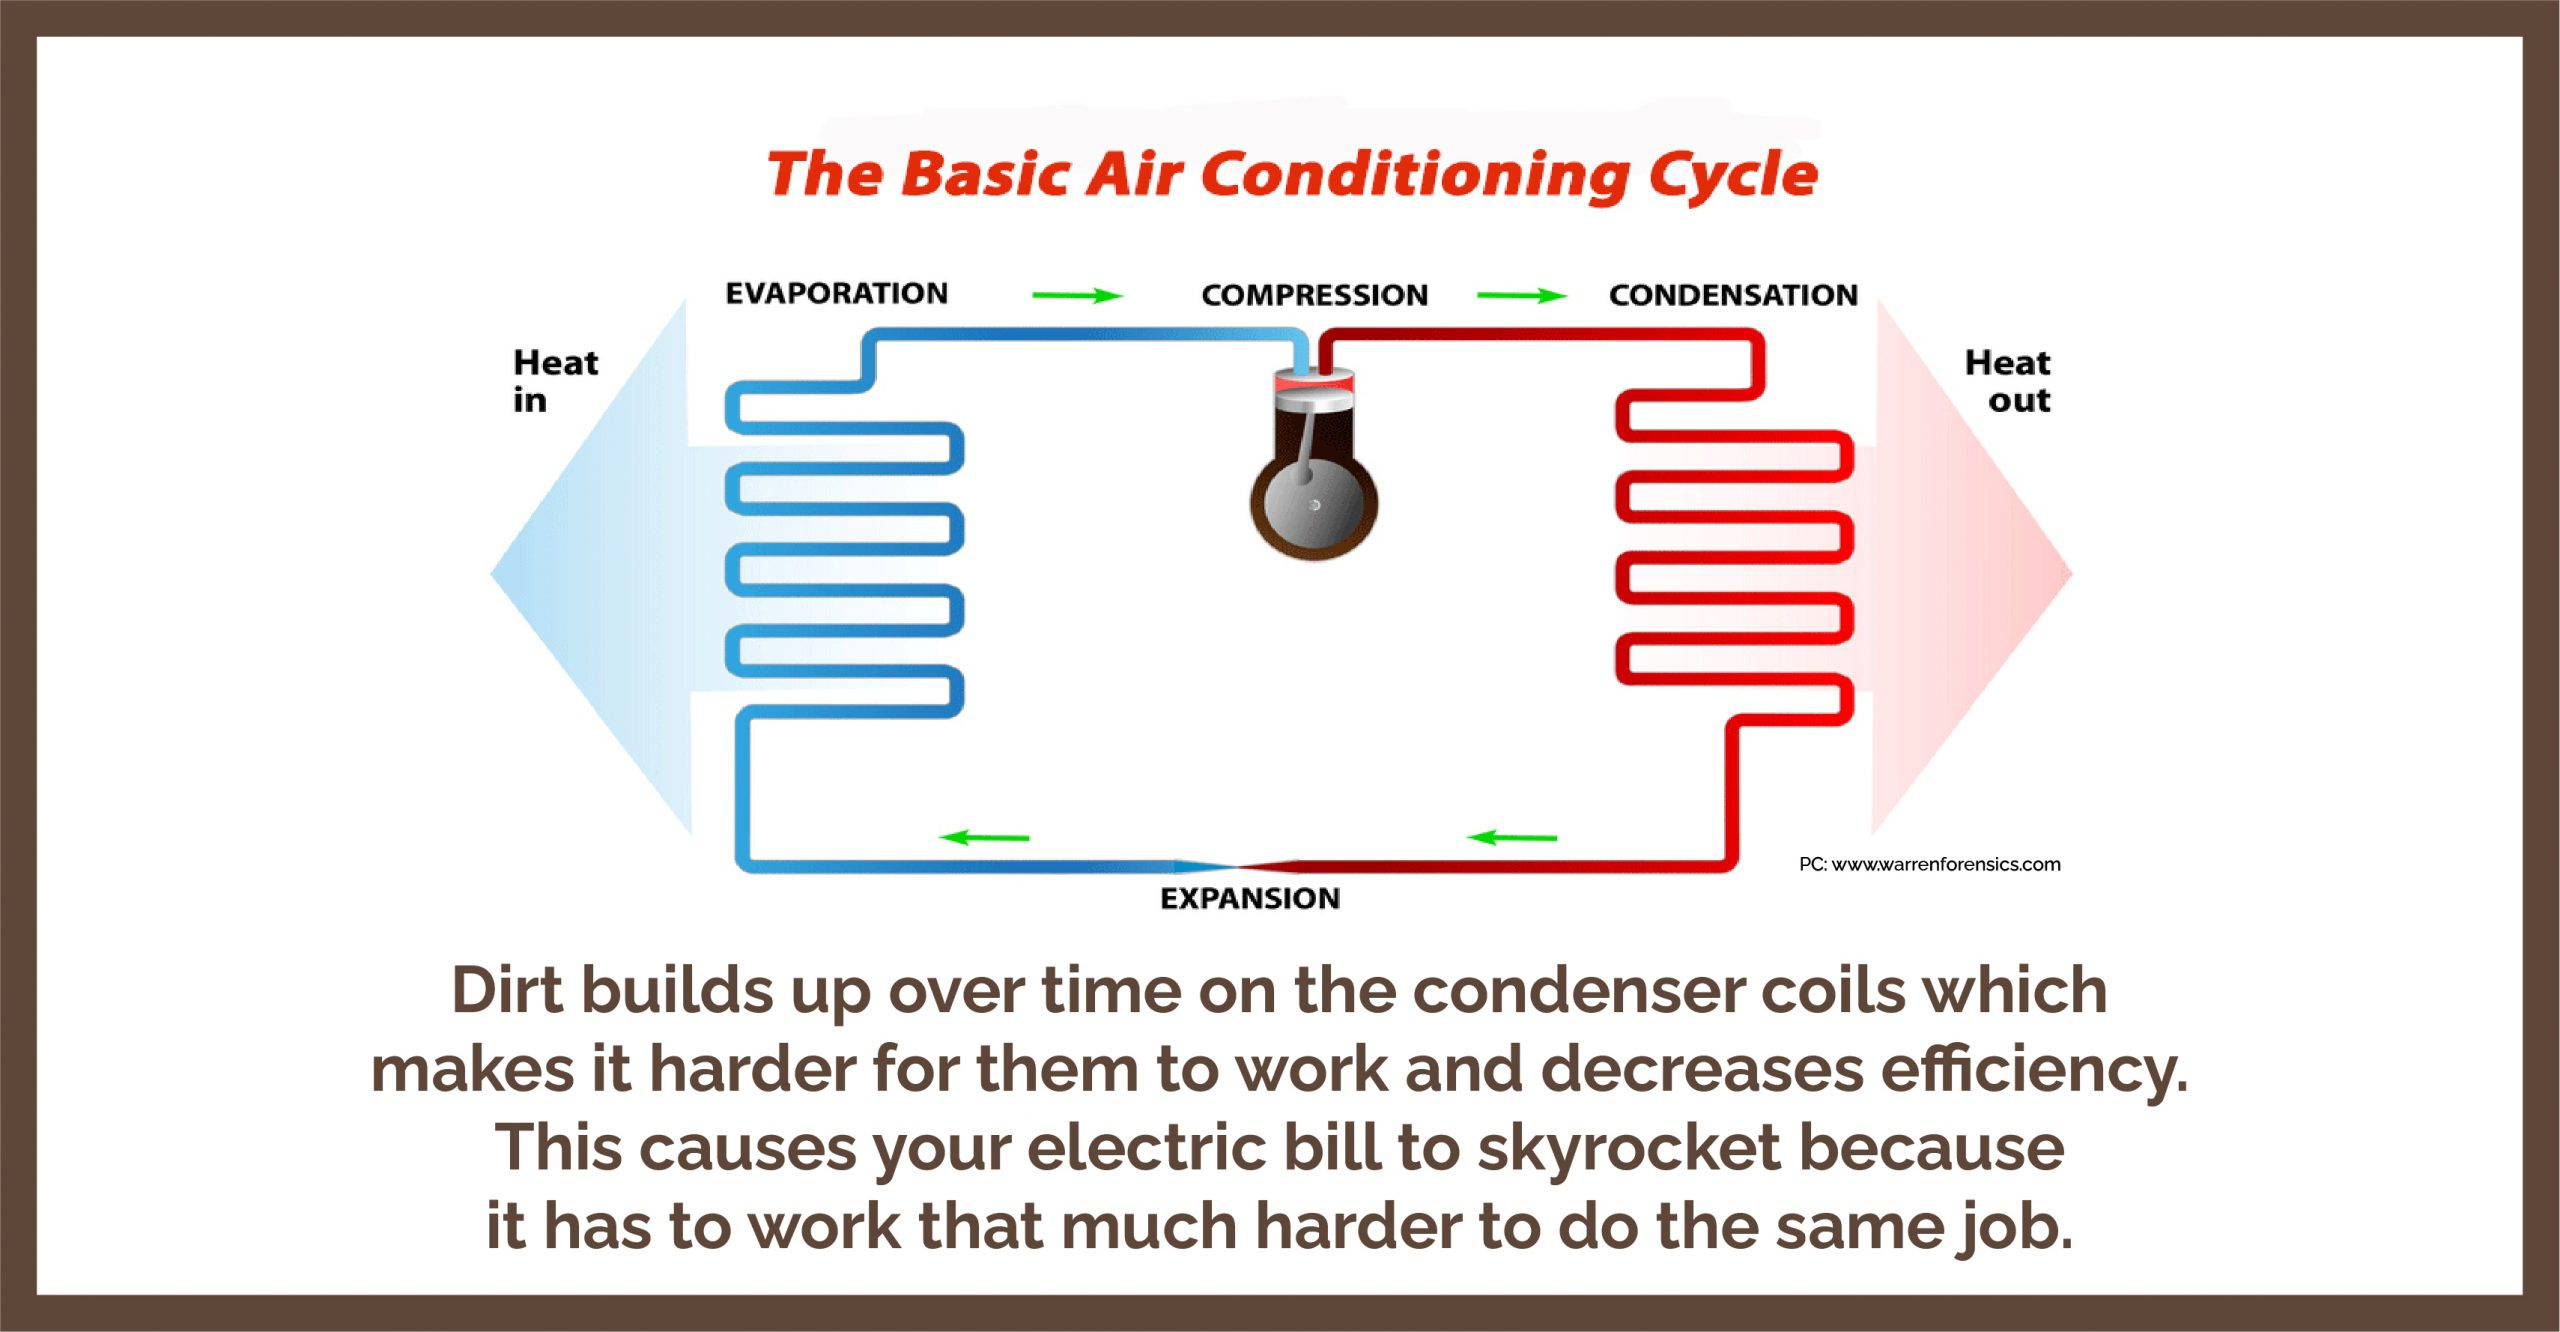 The condenser coils are located outside on your AC unit and they work by removing heat from the home and cooling it as a refrigerant move over the coils. This cool air is now pumped back into your home and the process repeats. After a while, the refrigerant process causes dirt to form on the coils as outside air is sucked in. As this dirt builds up over time on the condenser coils, it makes it harder for them to work and decreases efficiency.